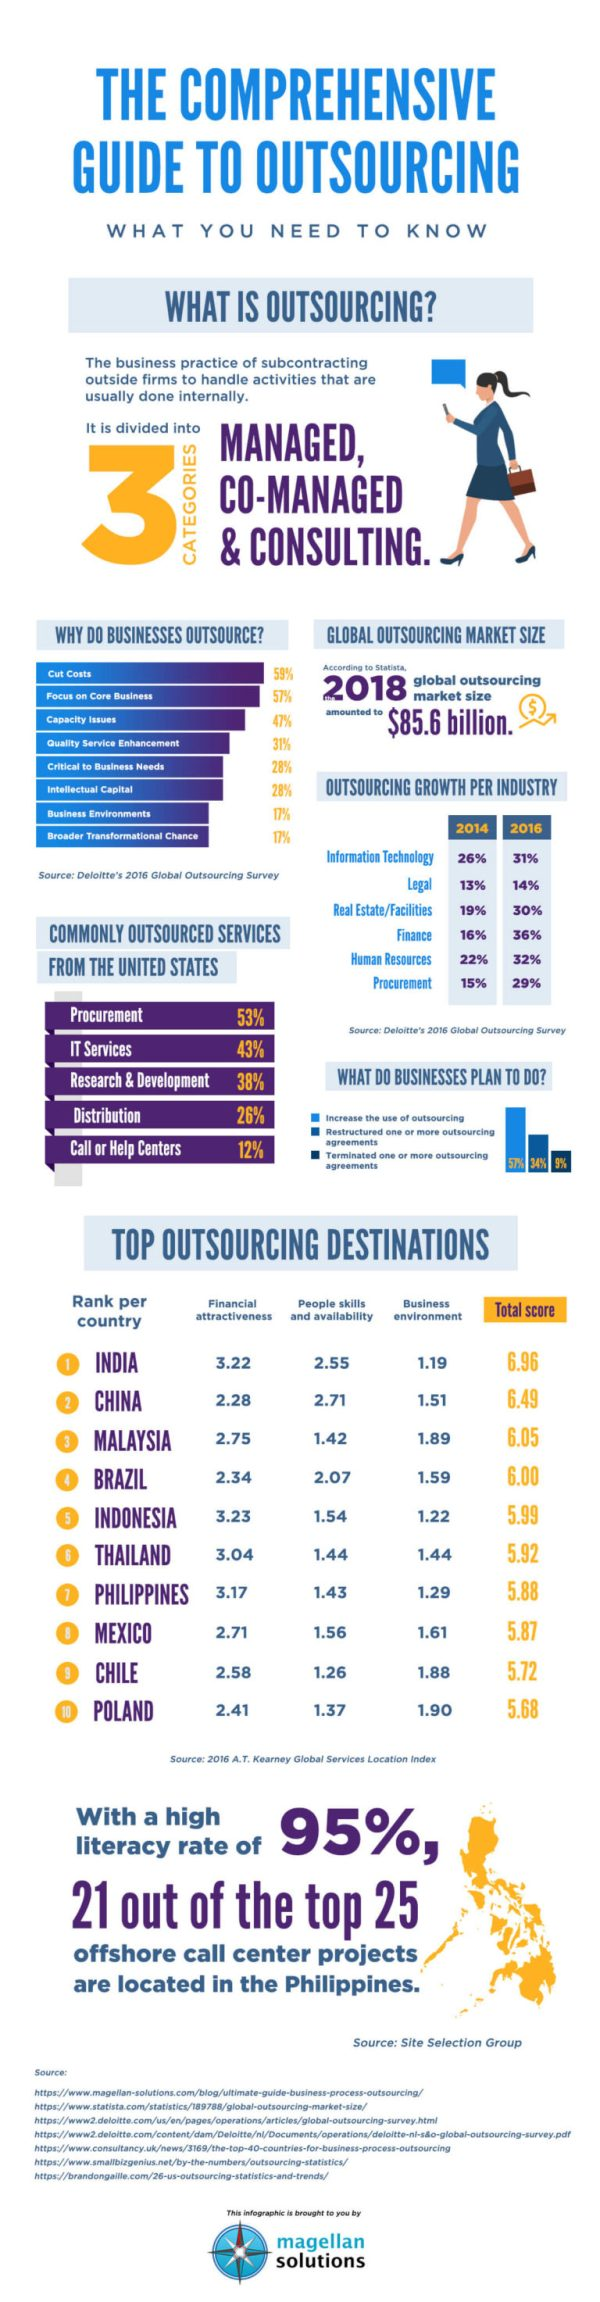 The-Comprehensive-Guide-To-Outsourcing-infographic